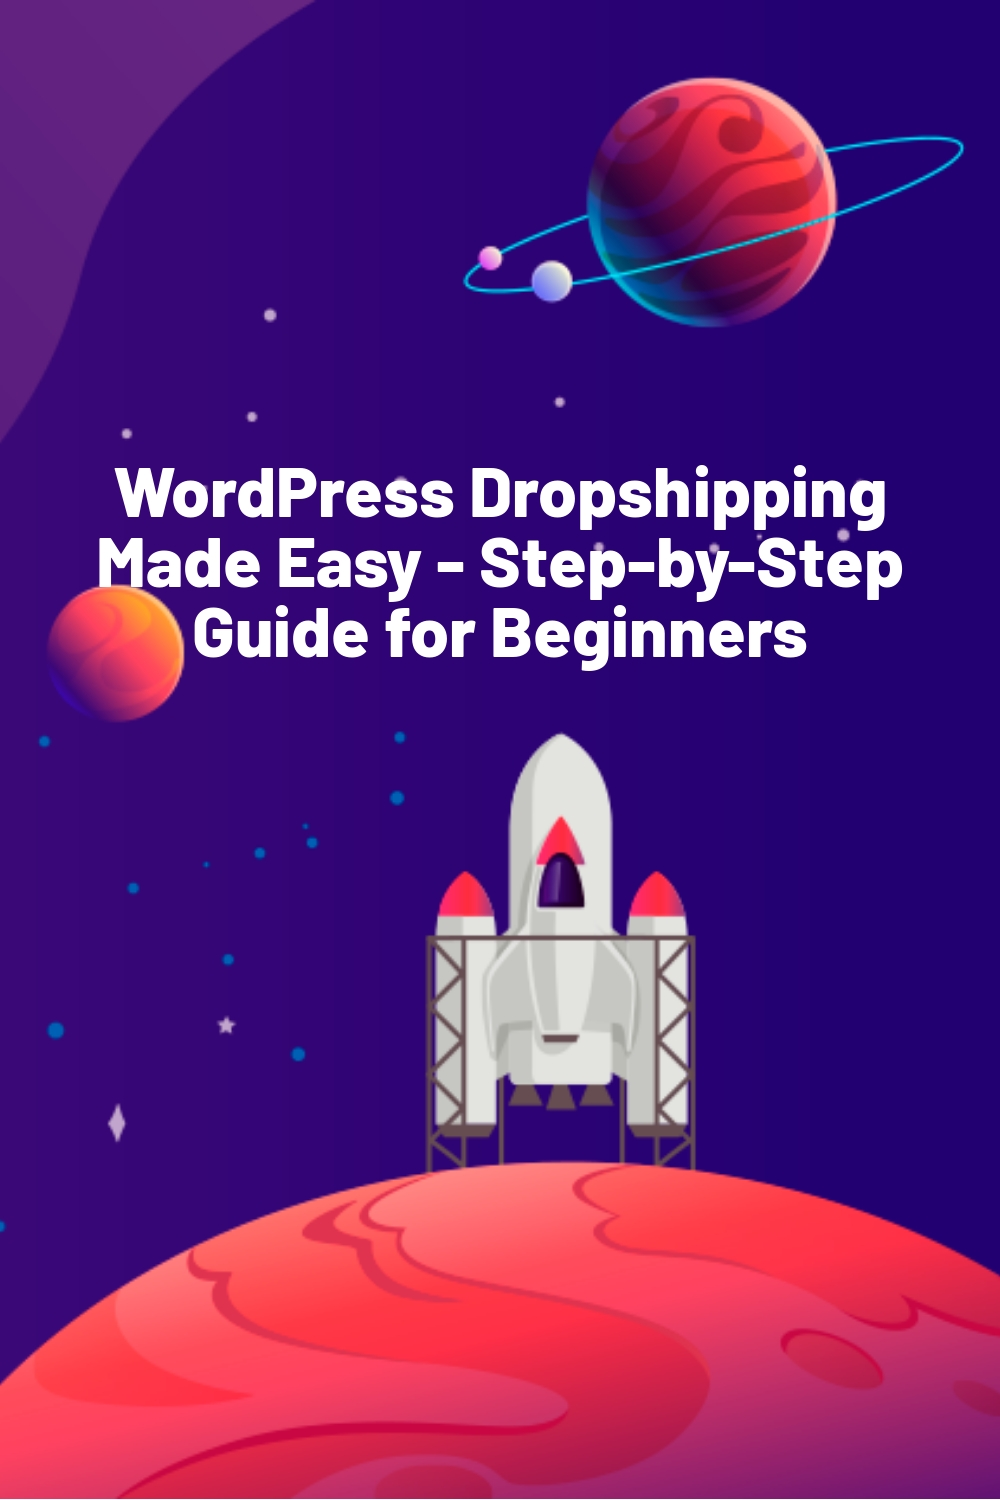 WordPress Dropshipping Made Easy – Step-by-Step Guide for Beginners